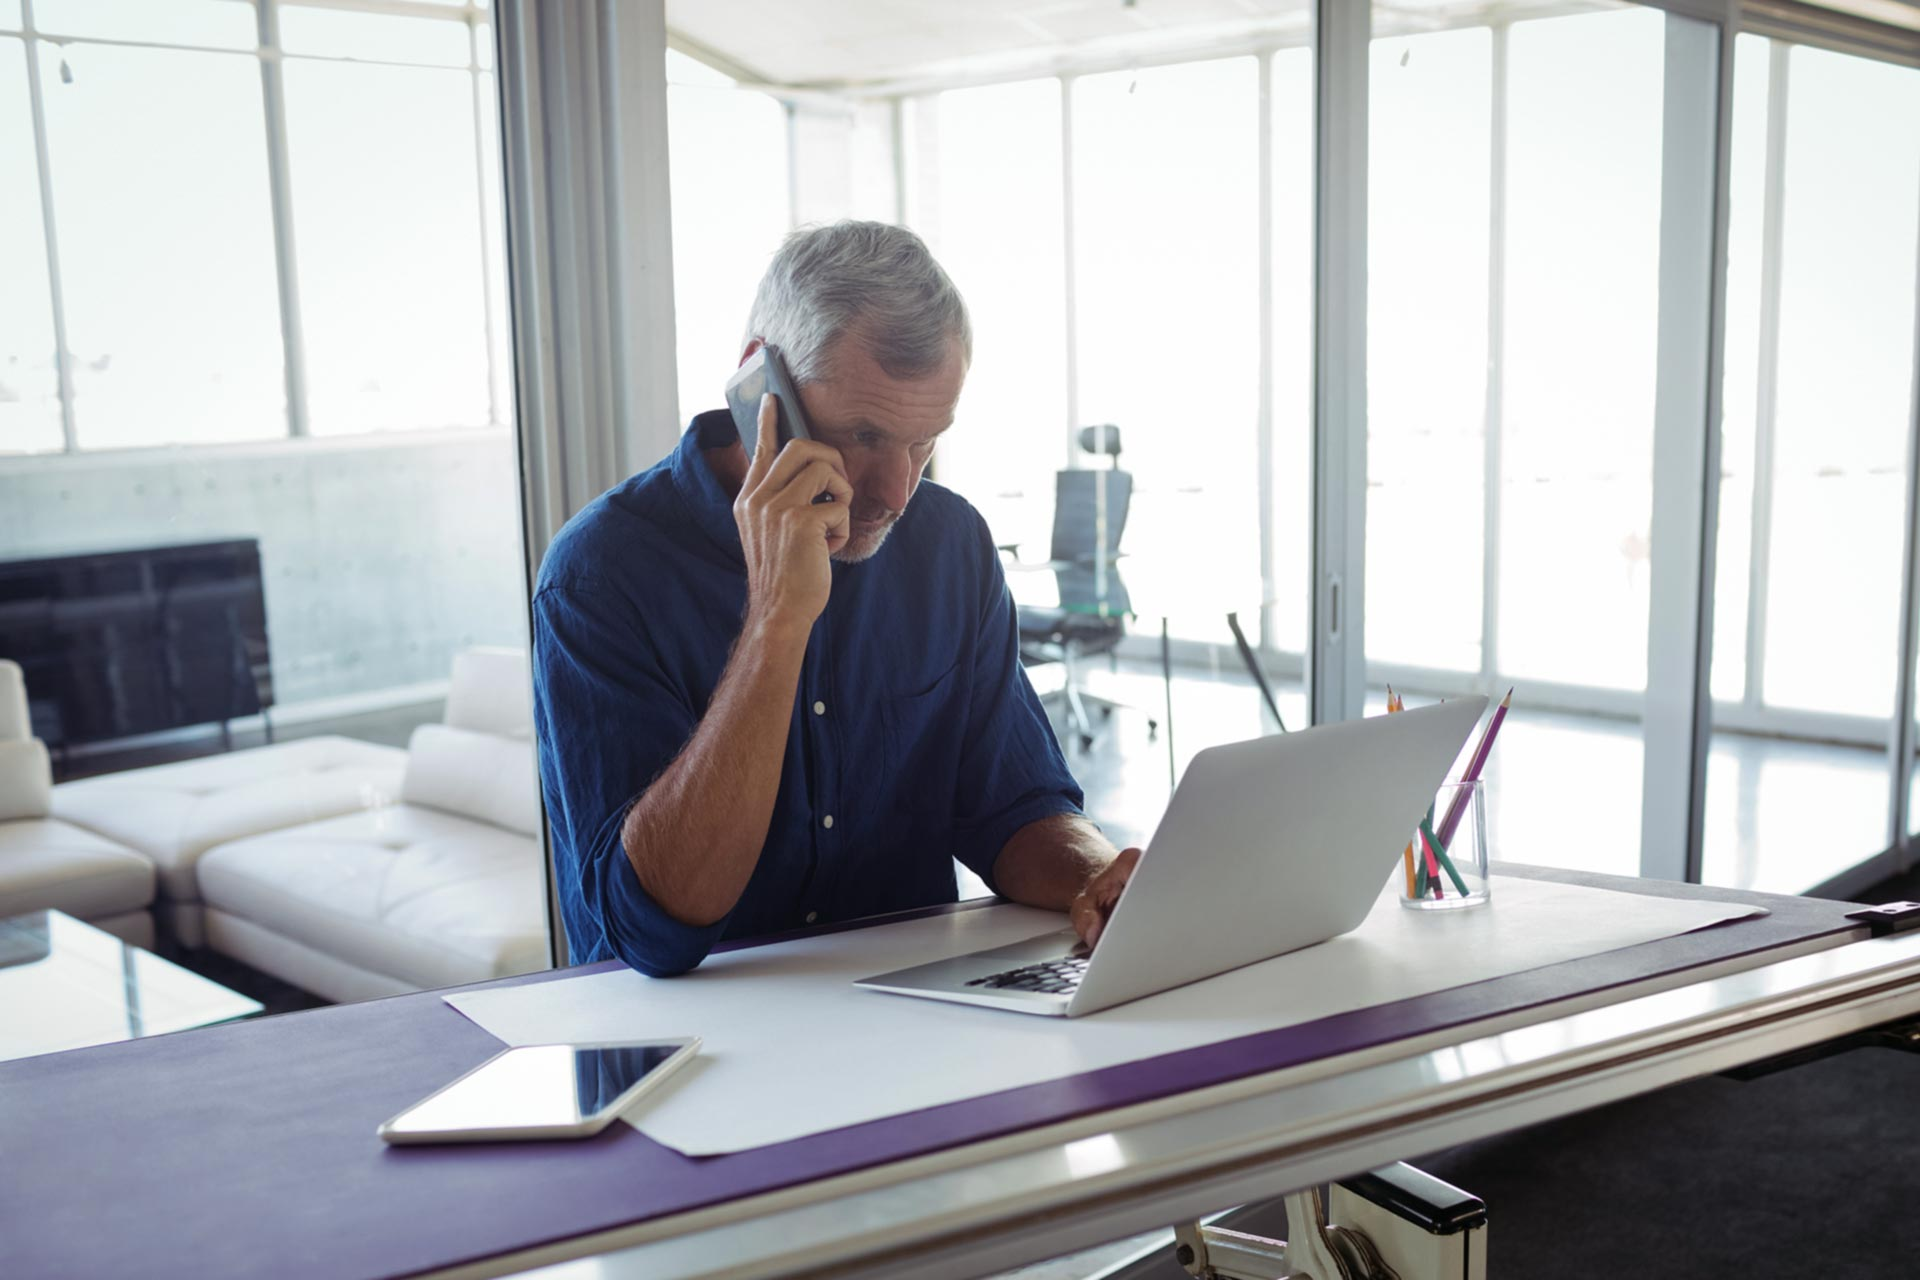 Man reinstating his business on the phone